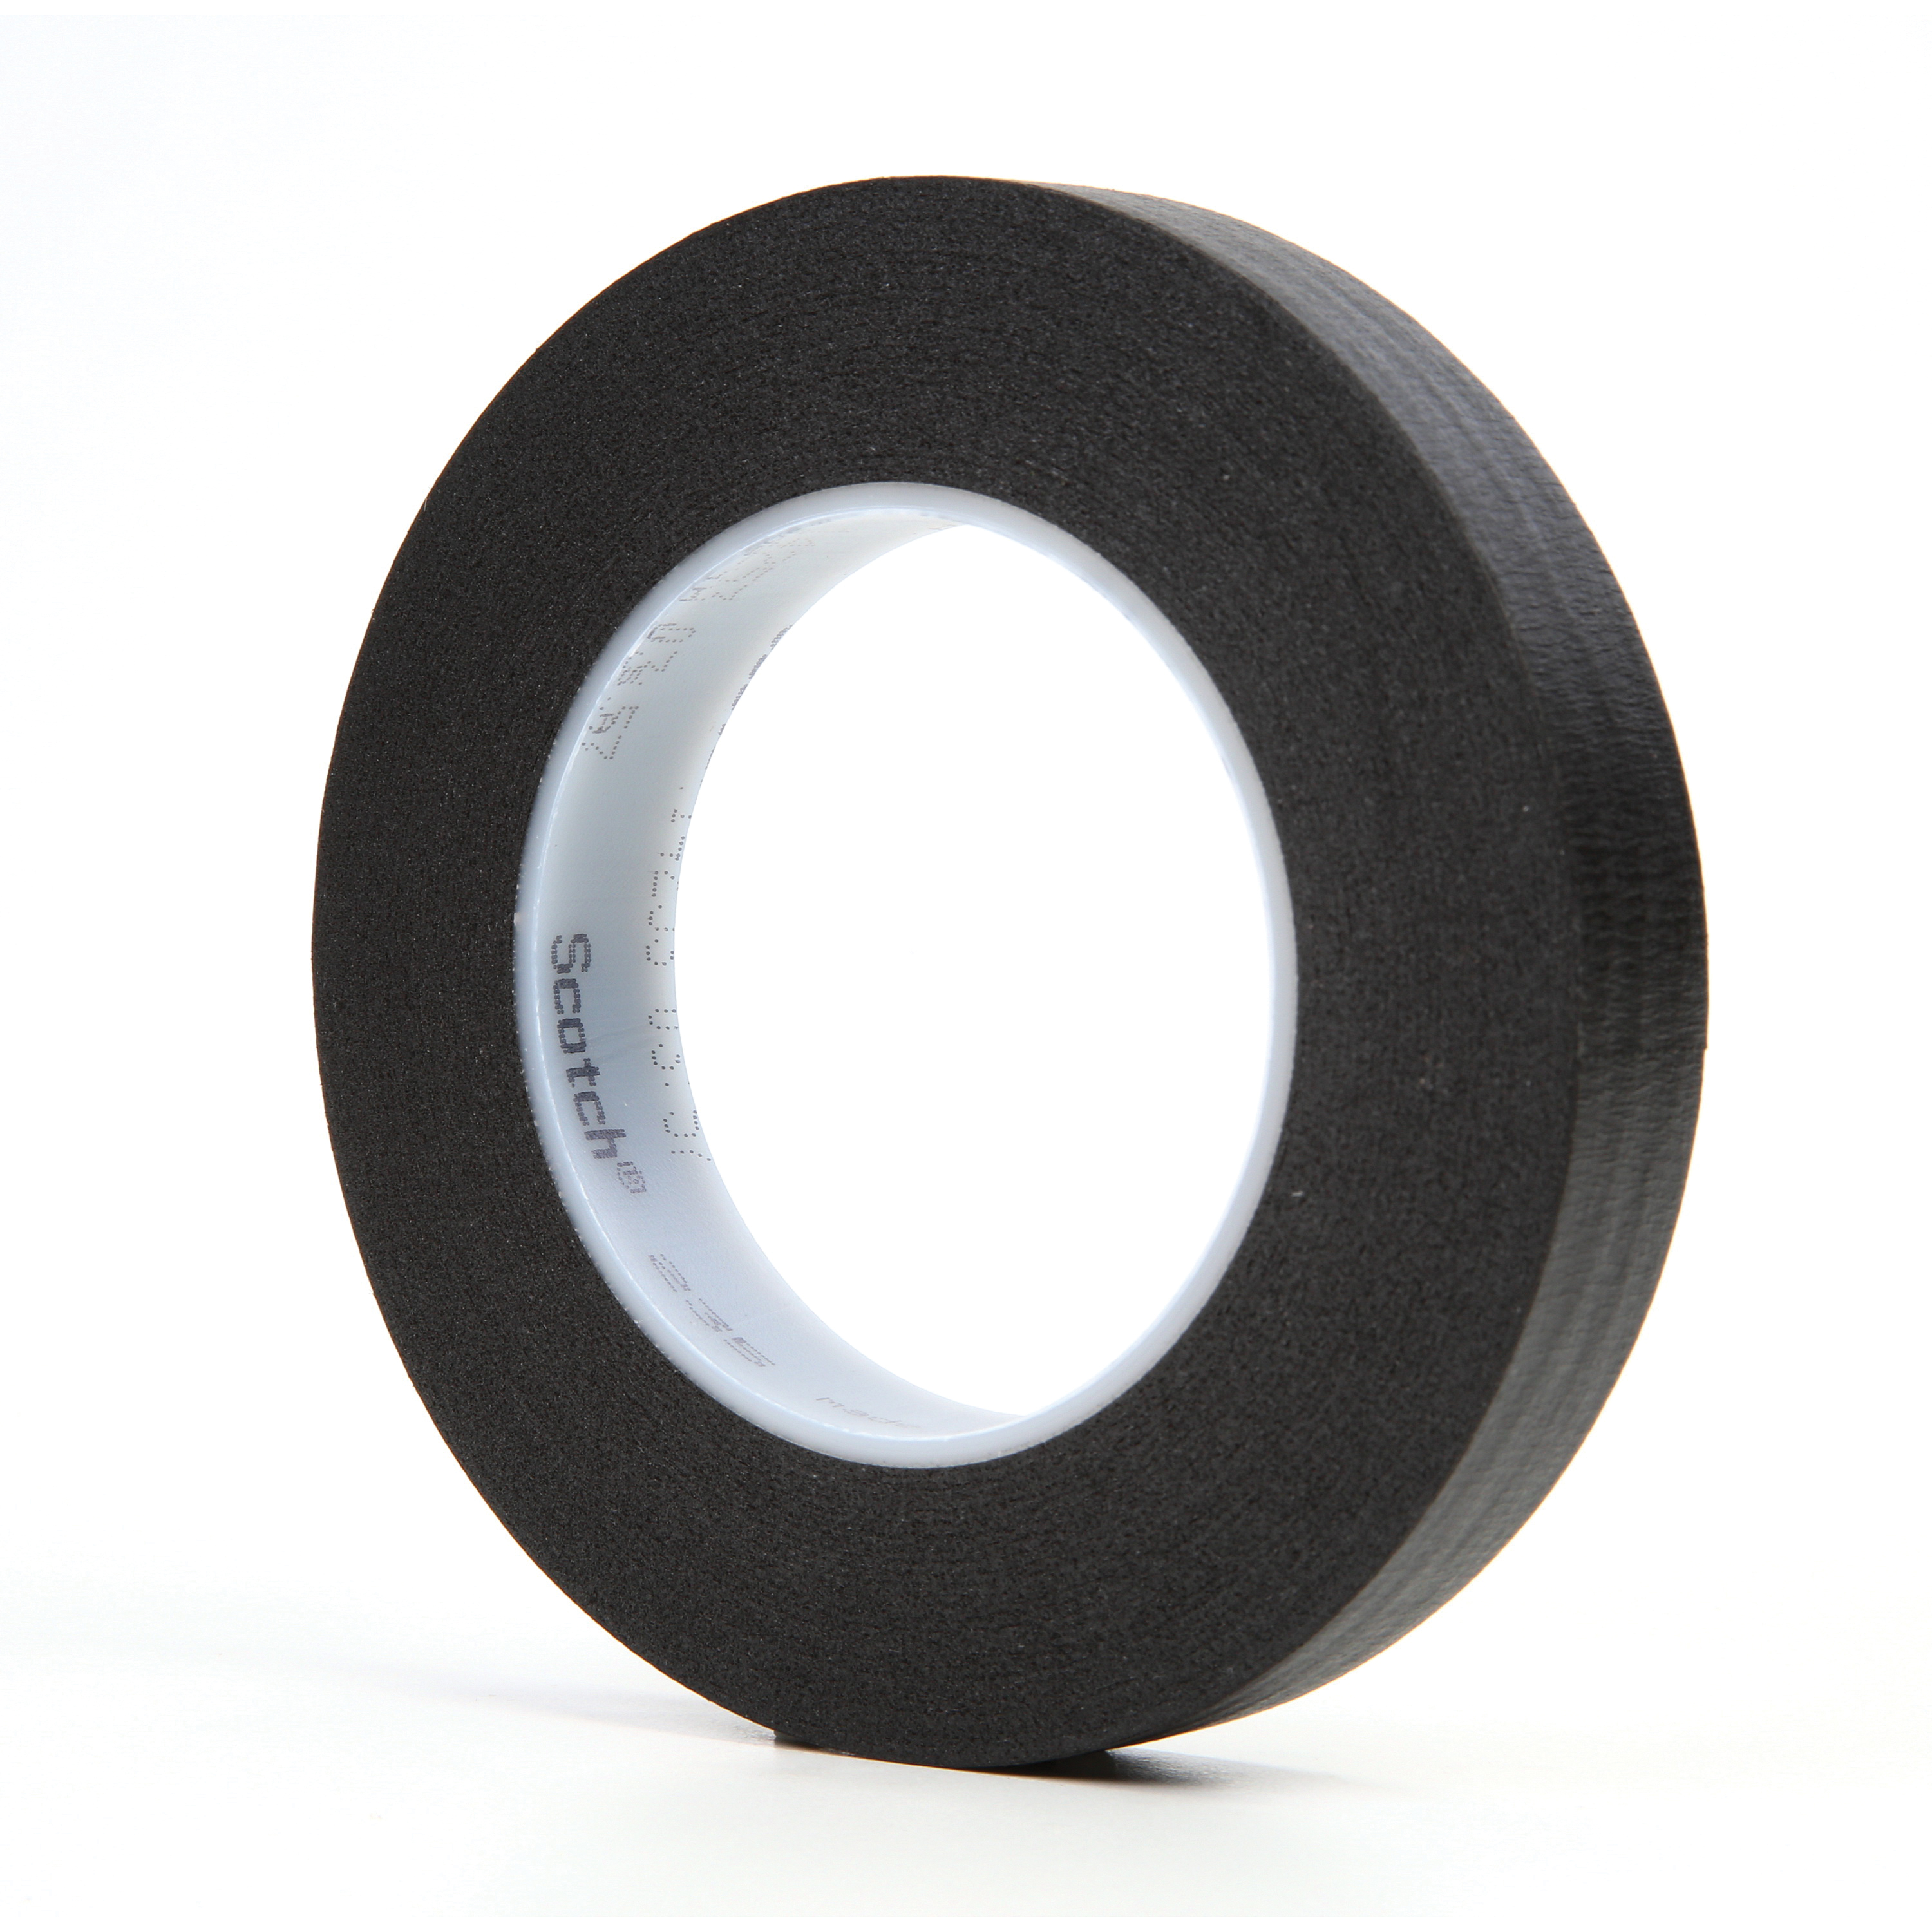 3M™ 021200-02839 Photographic Tape, 60 yd L x 3/4 in W, 7 mil THK, Rubber Adhesive, Crepe Paper Backing, Black